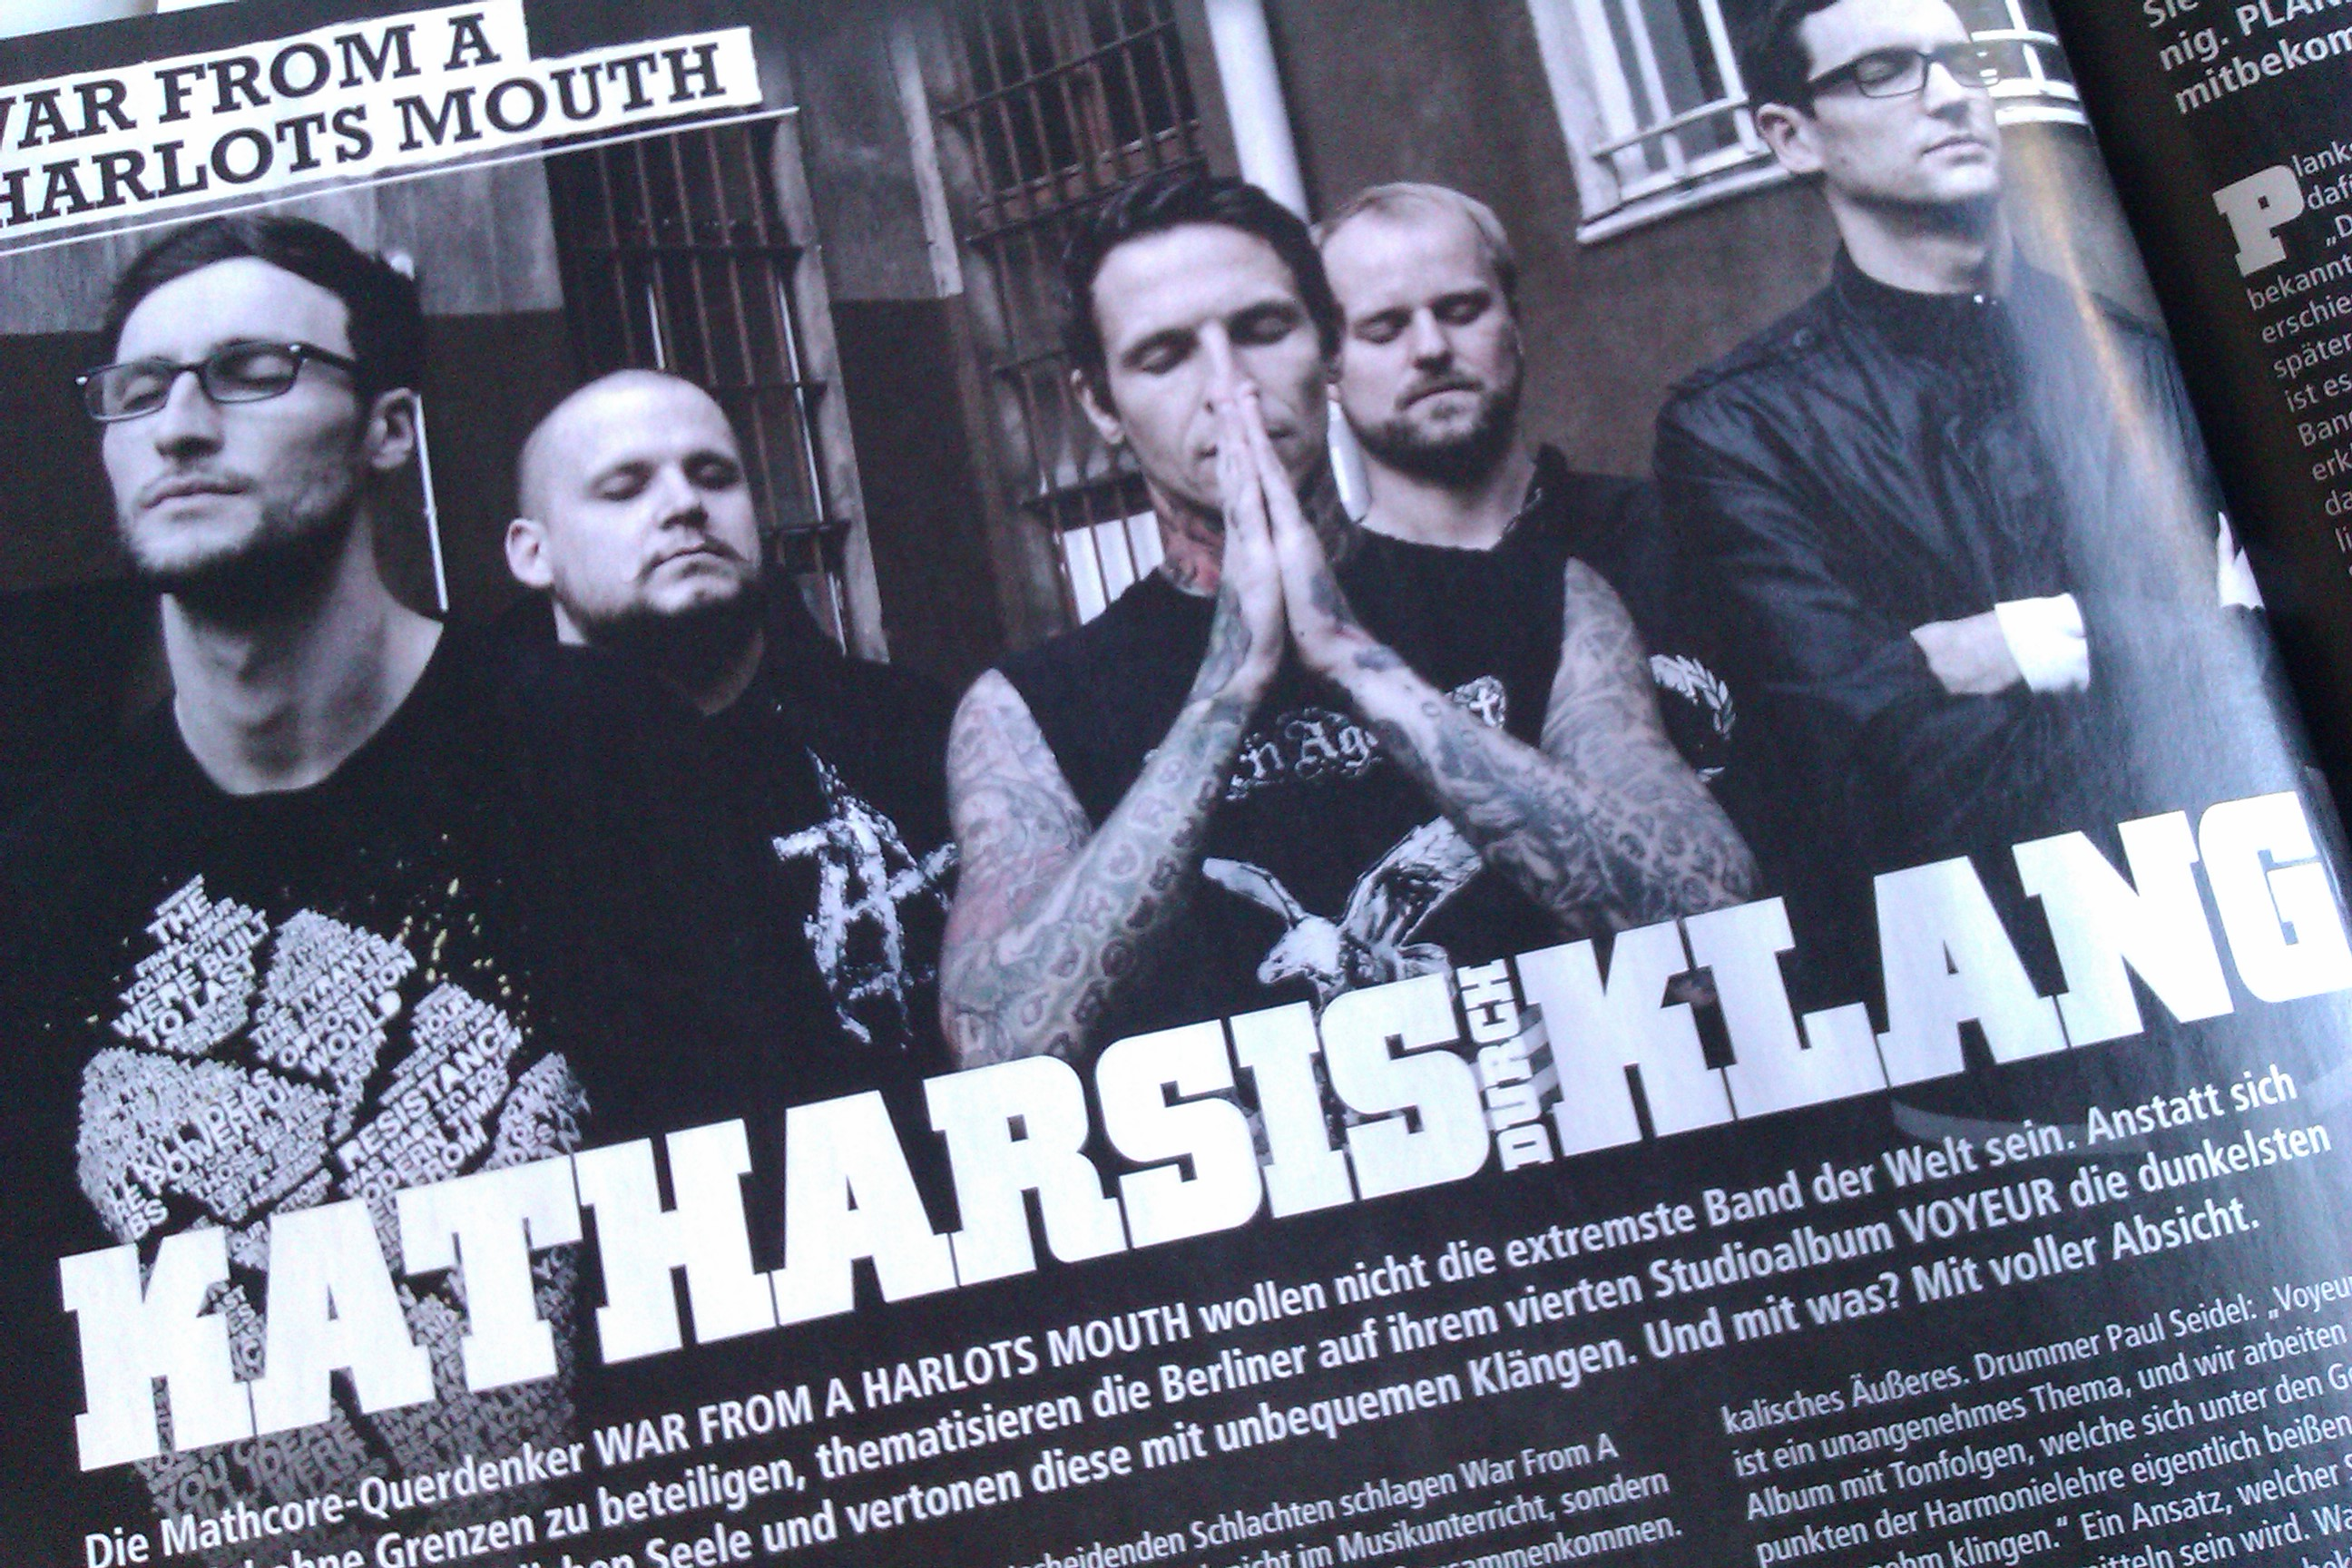 War From A Harlots Mouth in METAL HAMMER-Ausgabe 11/2012